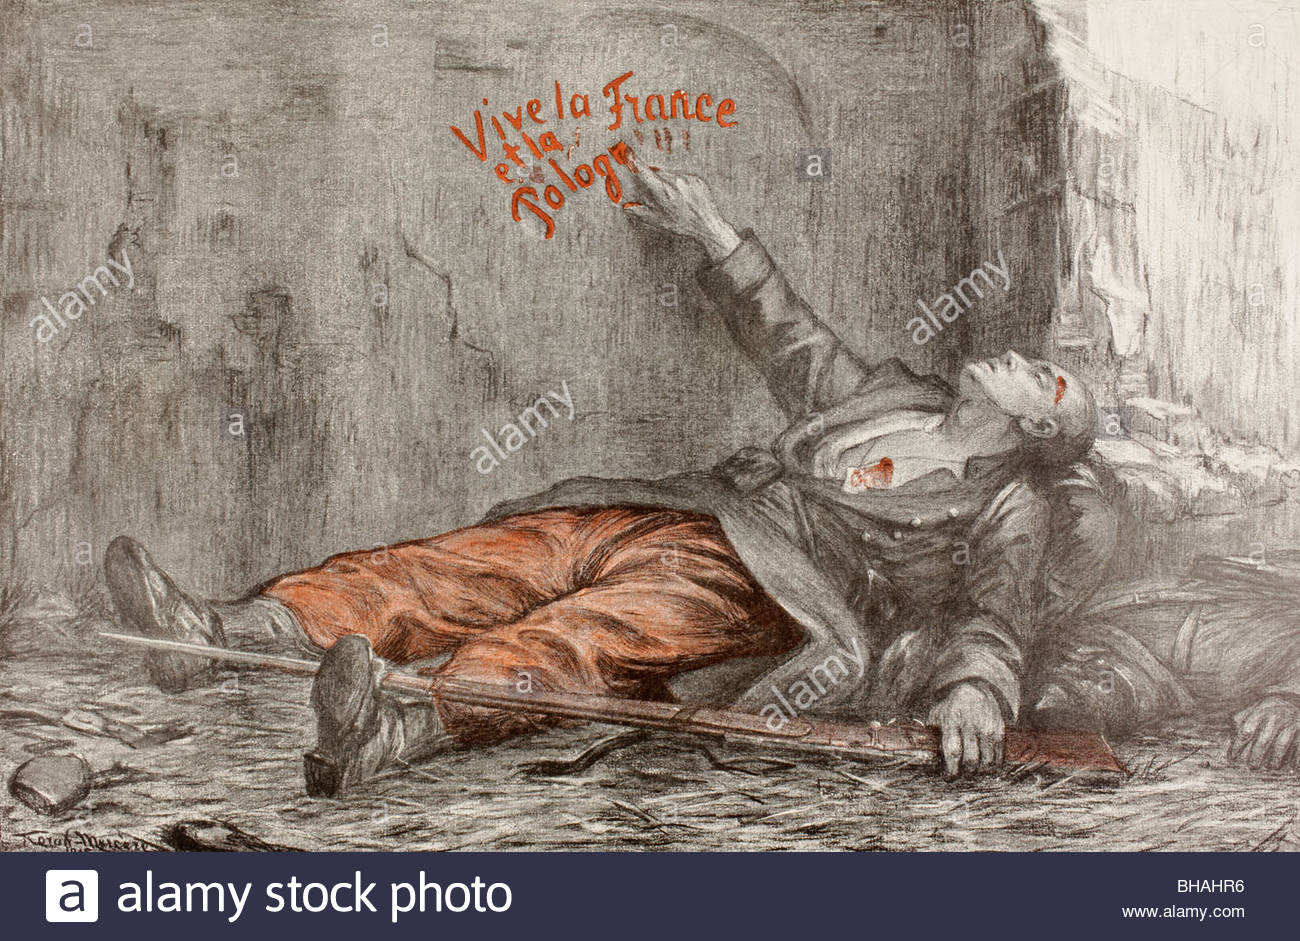 1300x941 The Death Of A Polish Volunteer. Propaganda Drawing Issued During